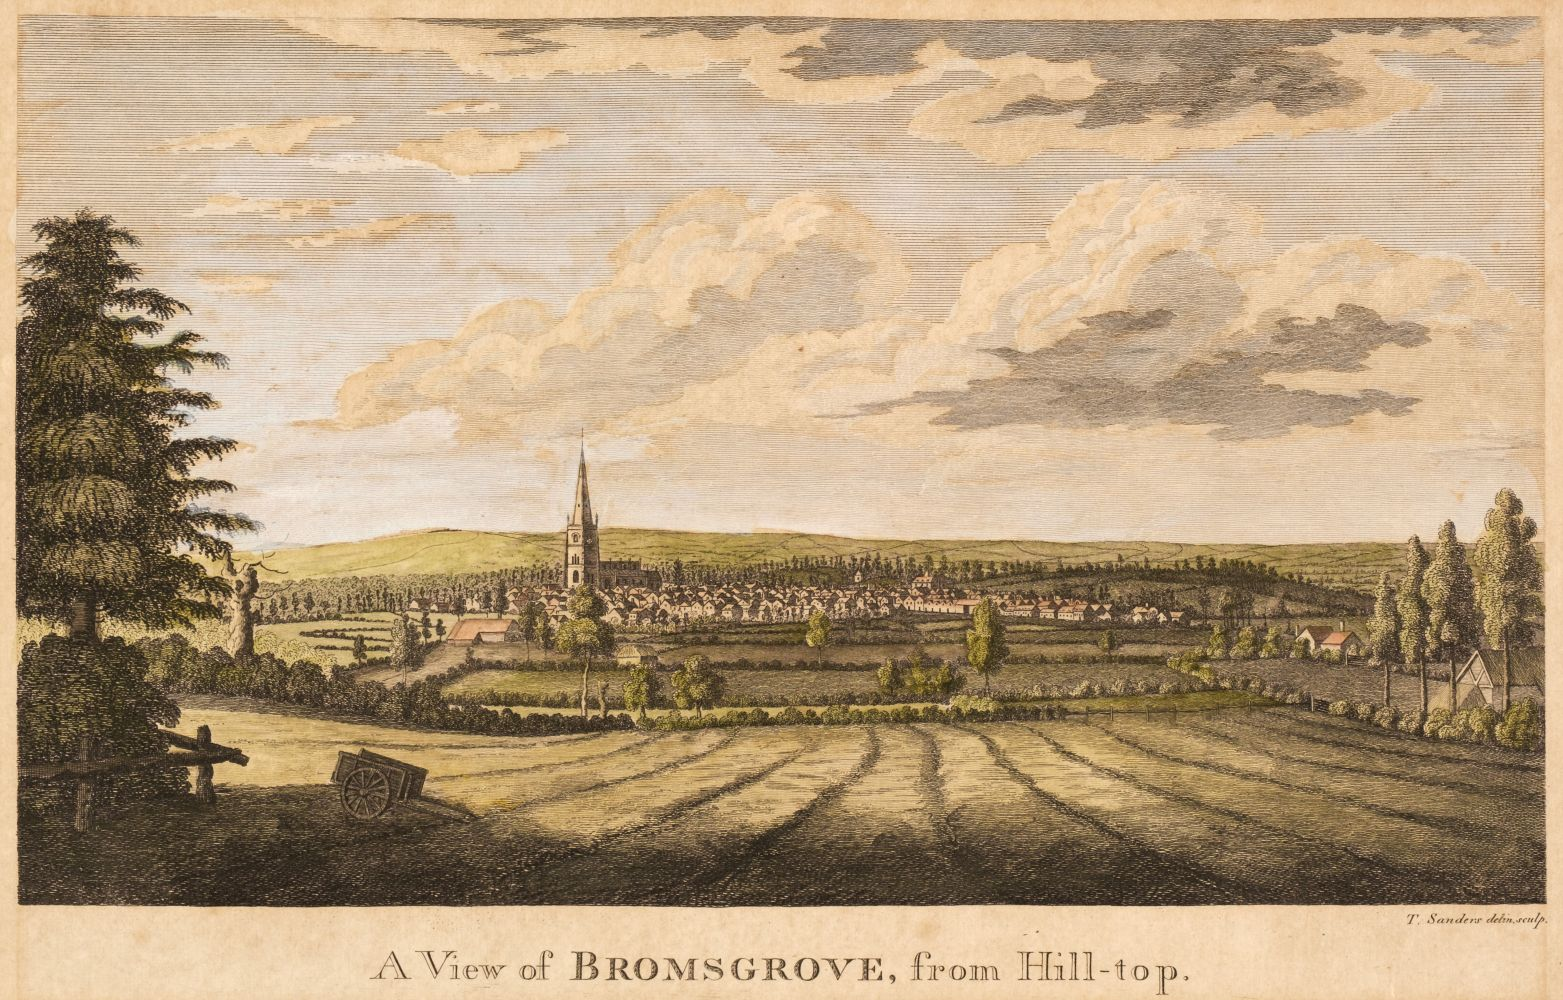 * Midland Counties. A collection of approximately 150 views, mostly 19th century